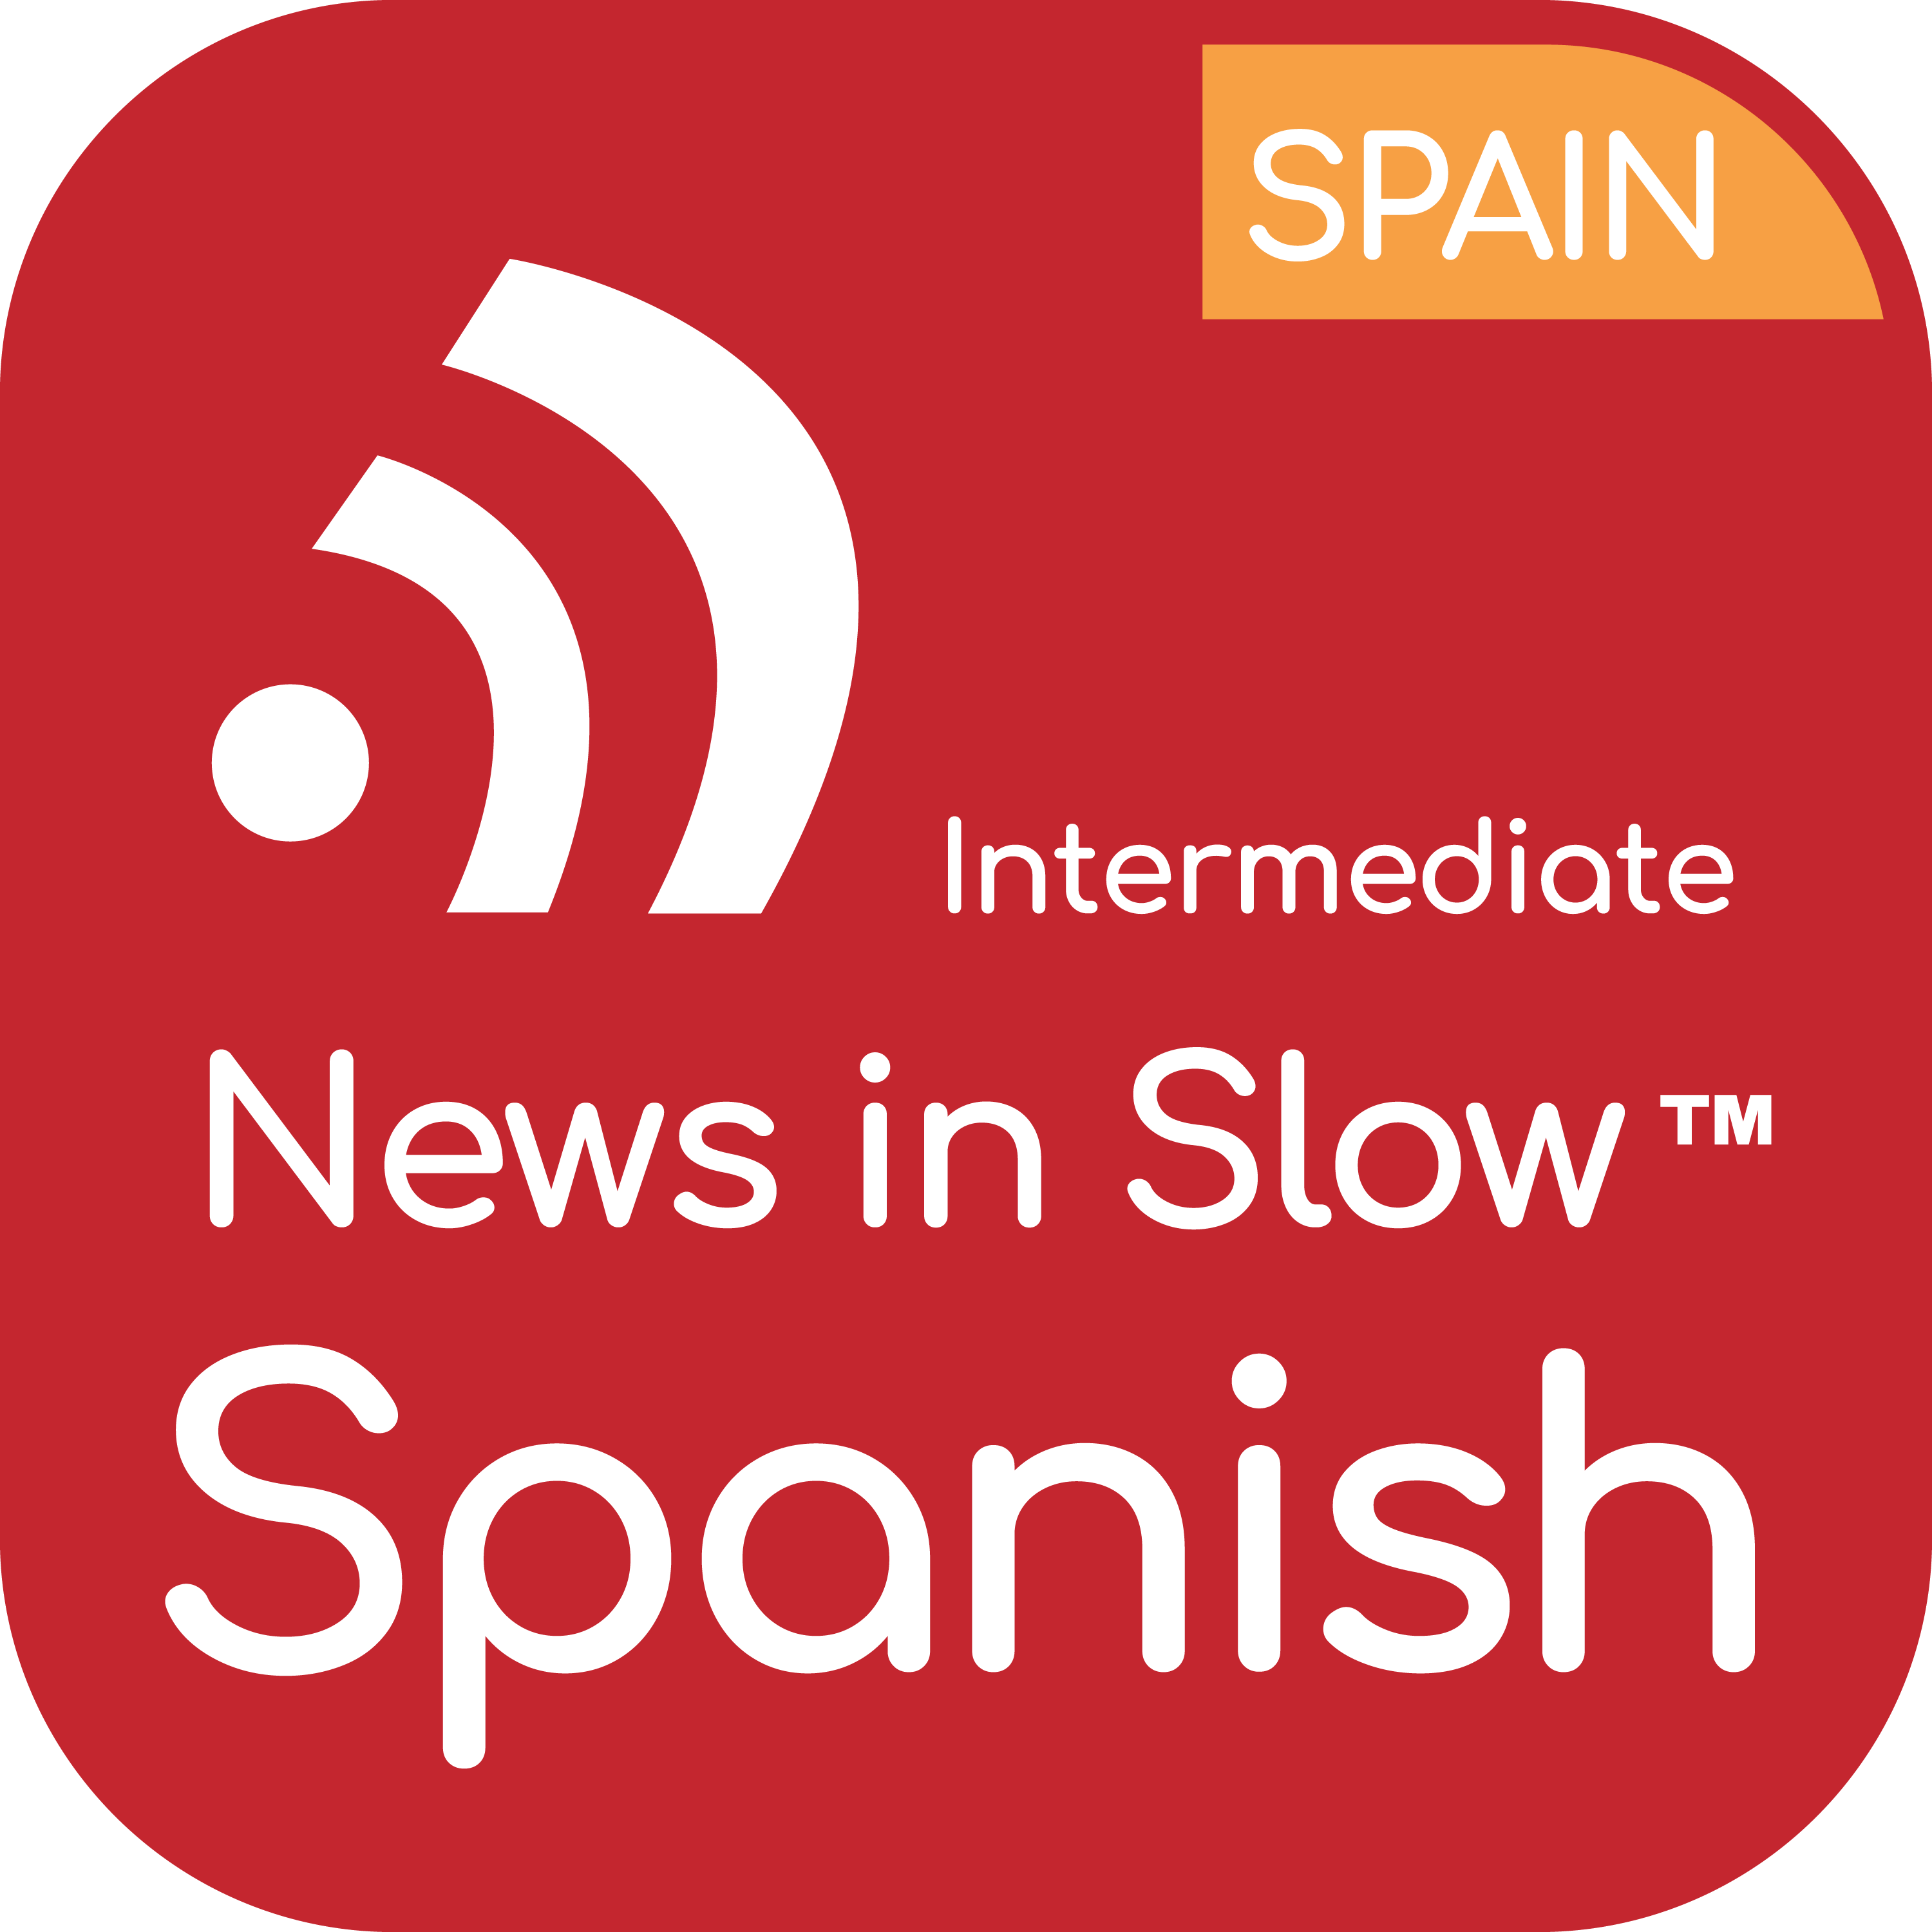 News in Slow Spanish - #567 - Learn Spanish through Current Events